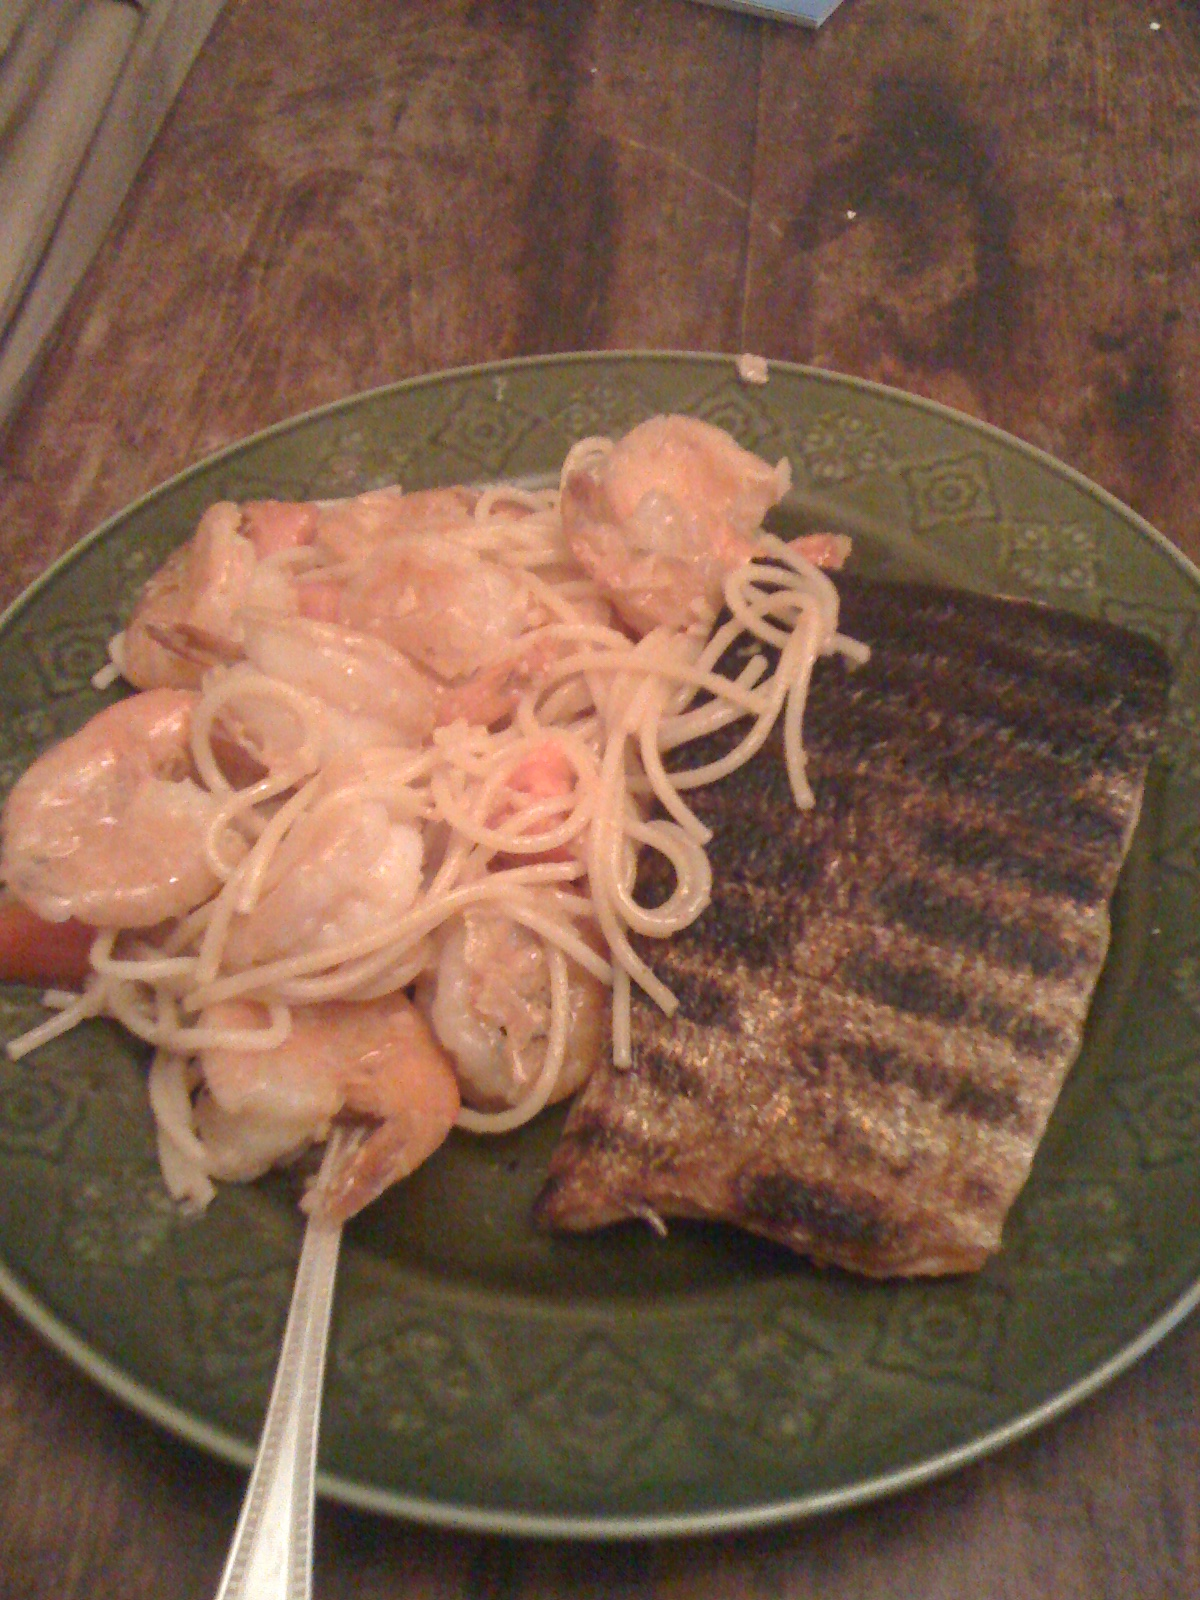 My House Cambridge, MA :: Grilled Salmon... I over cooked it a tad... I like salmon rawish in the middle...  I was at the market and saw some peel and eat shrimp... tossed some noodles+shrimp in a garlic butter white wine sauce welcome to yummie time!